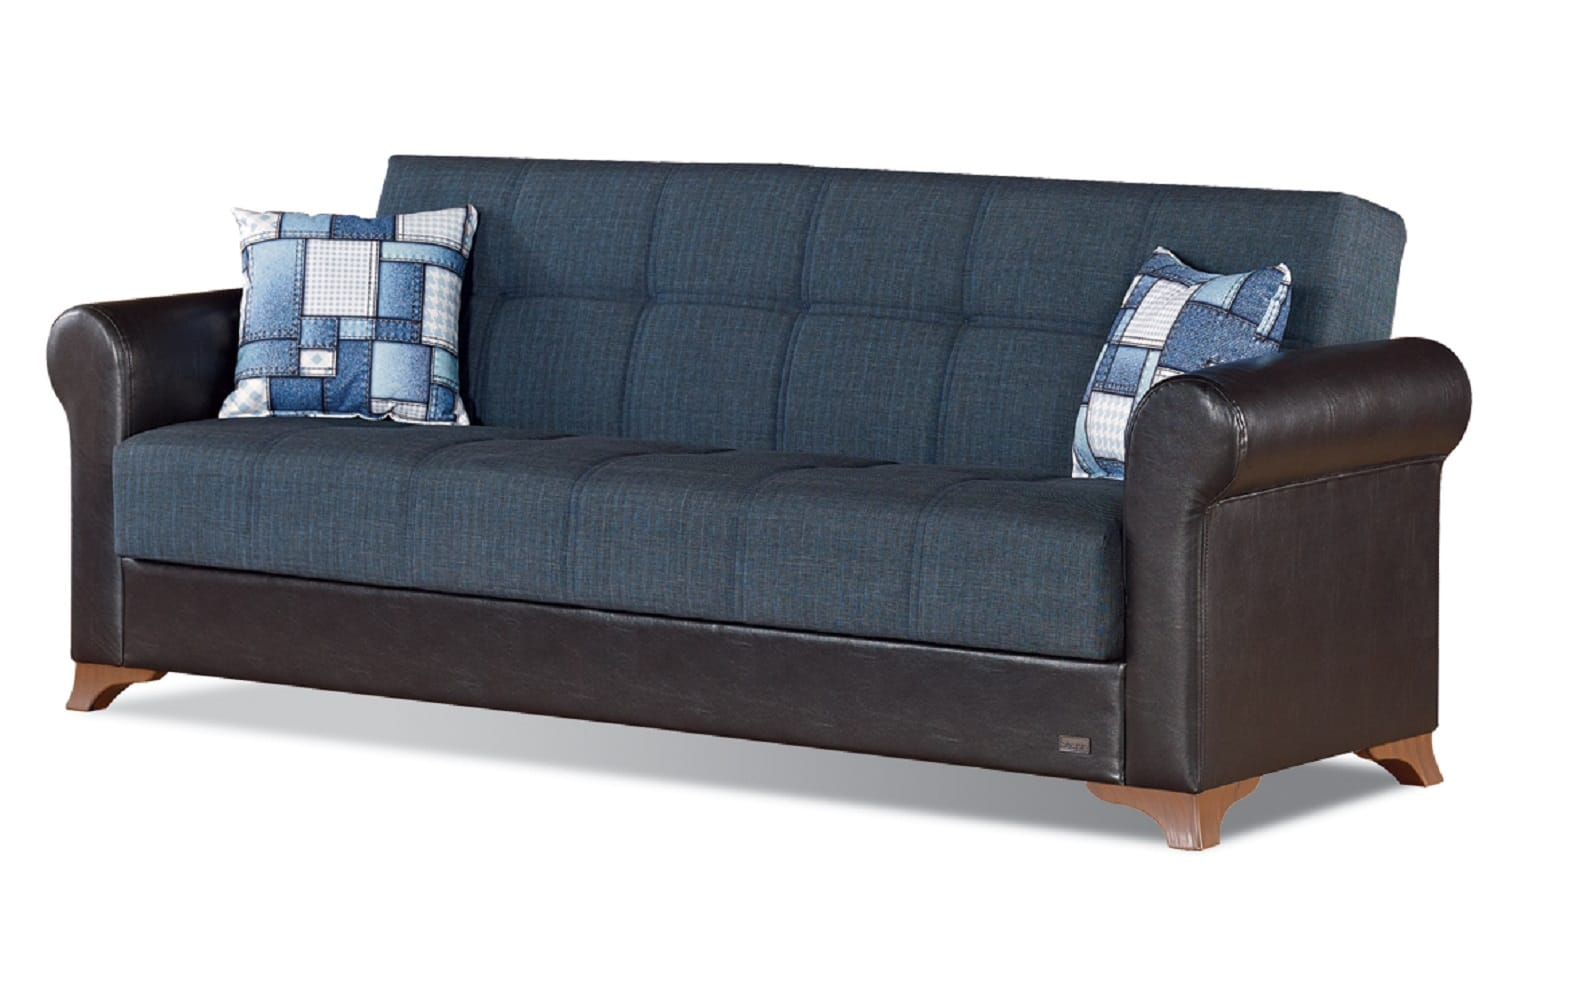 Hudson Grey Fabric Sofa Bed By Empire Furniture Usa